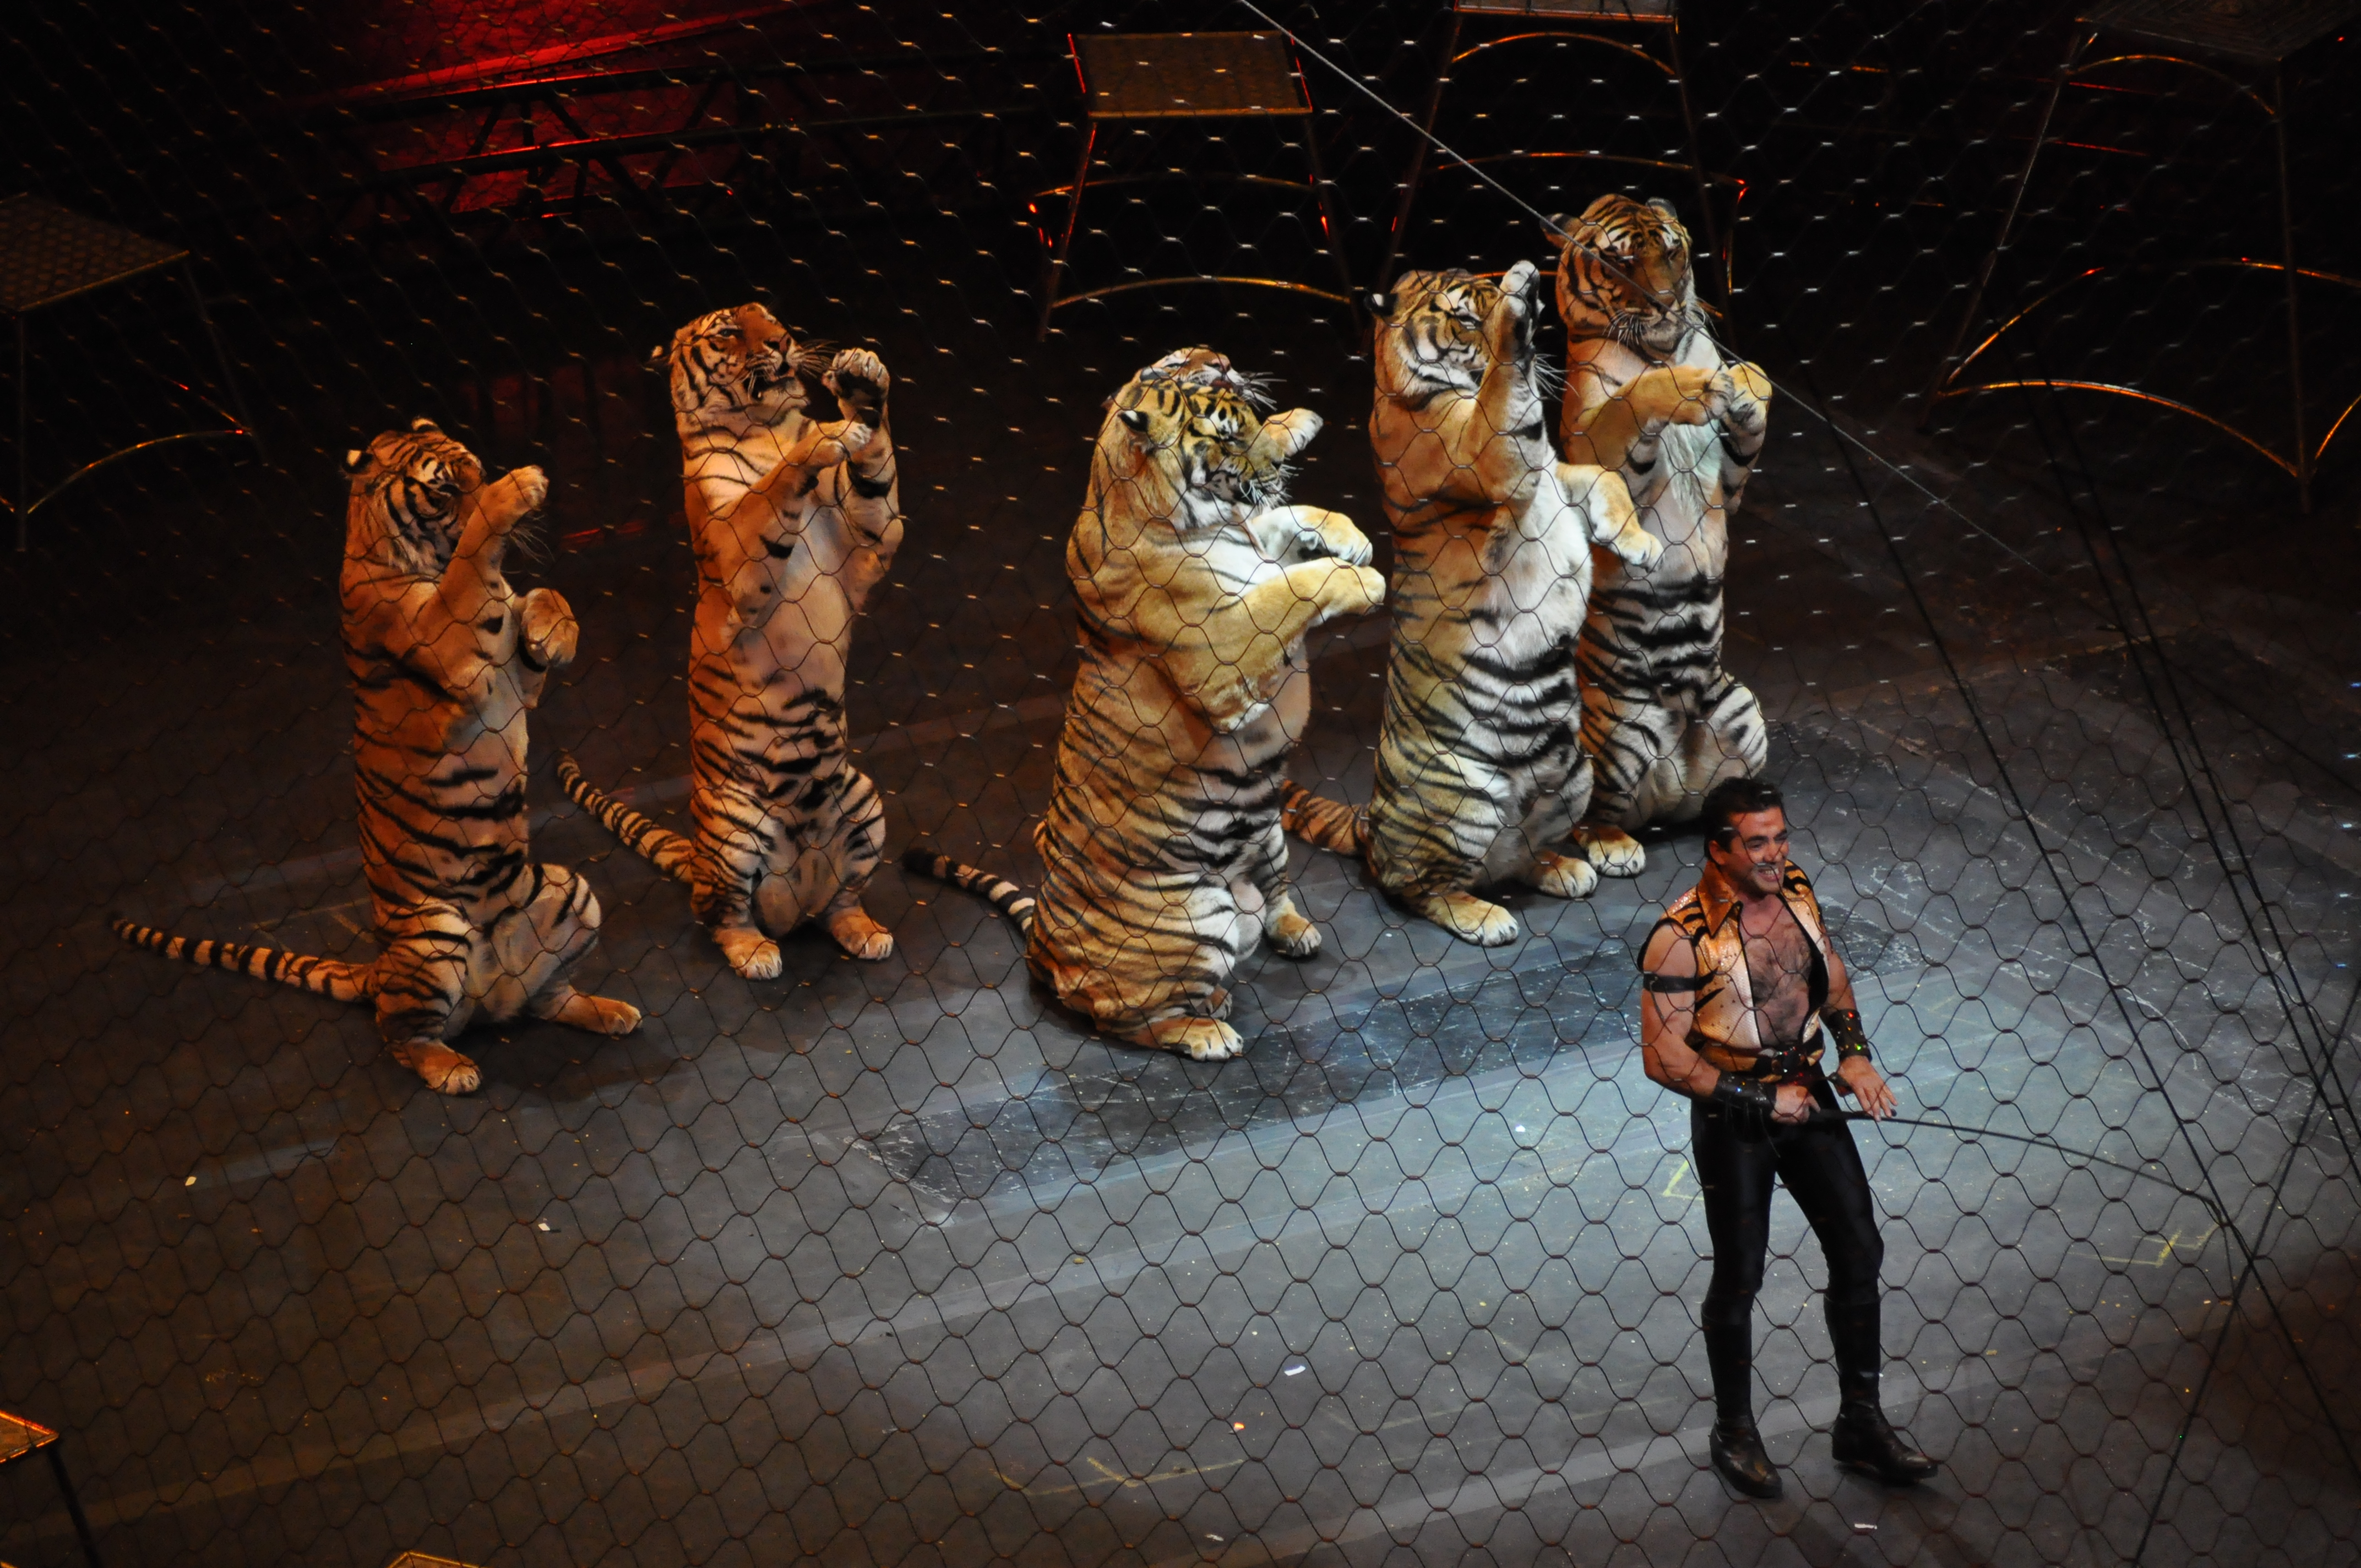 Ringling Brothers Circus Animals